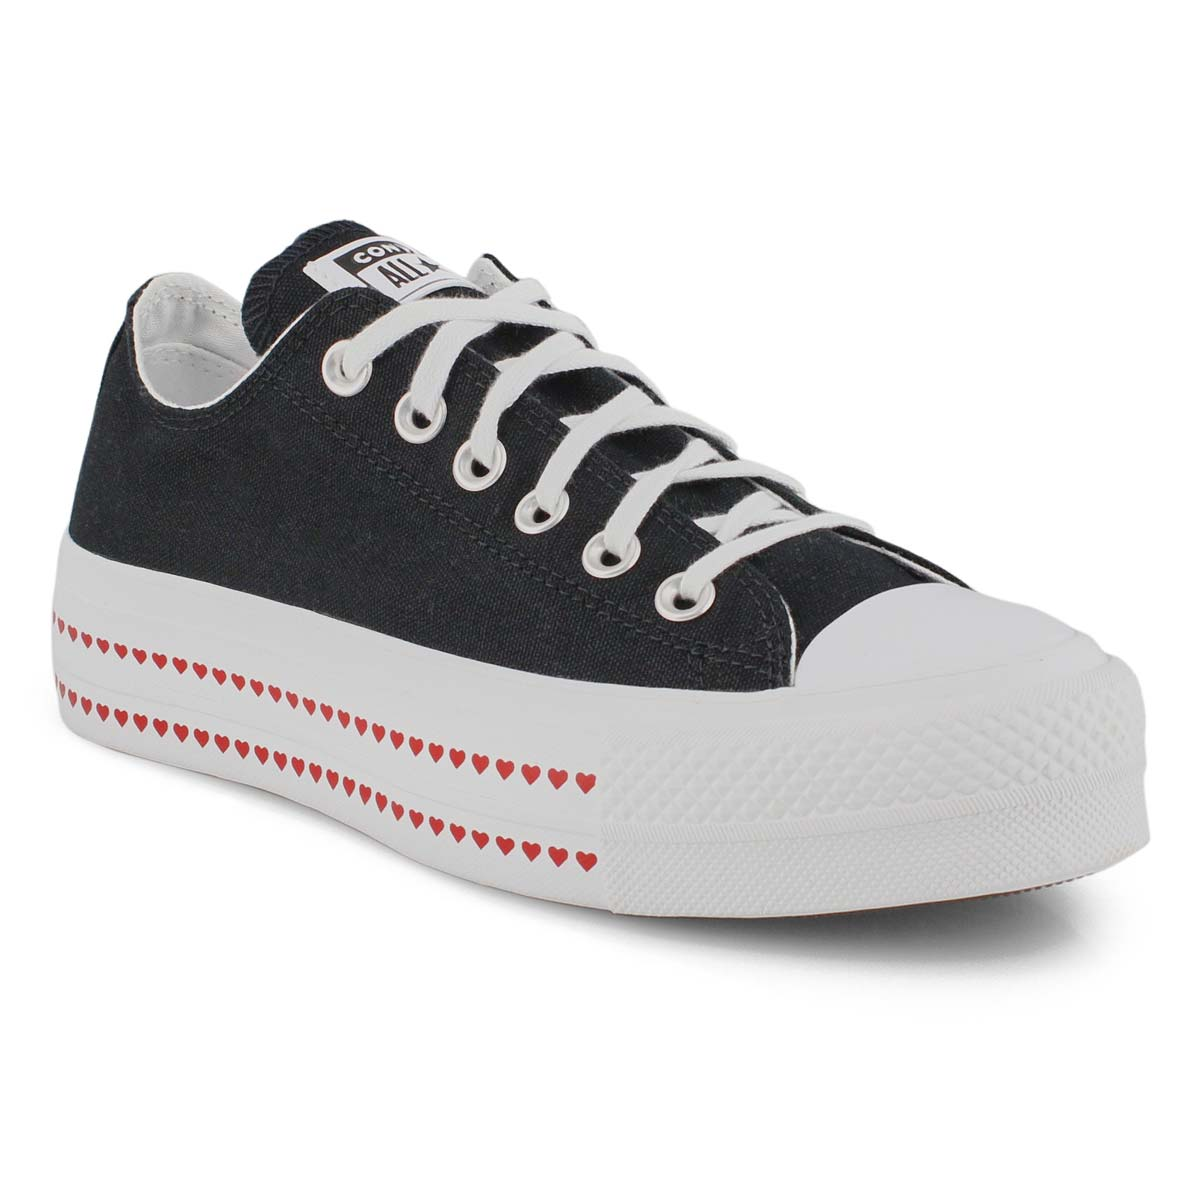 Lds CTAS Lift Love Fearlessly blk snkr